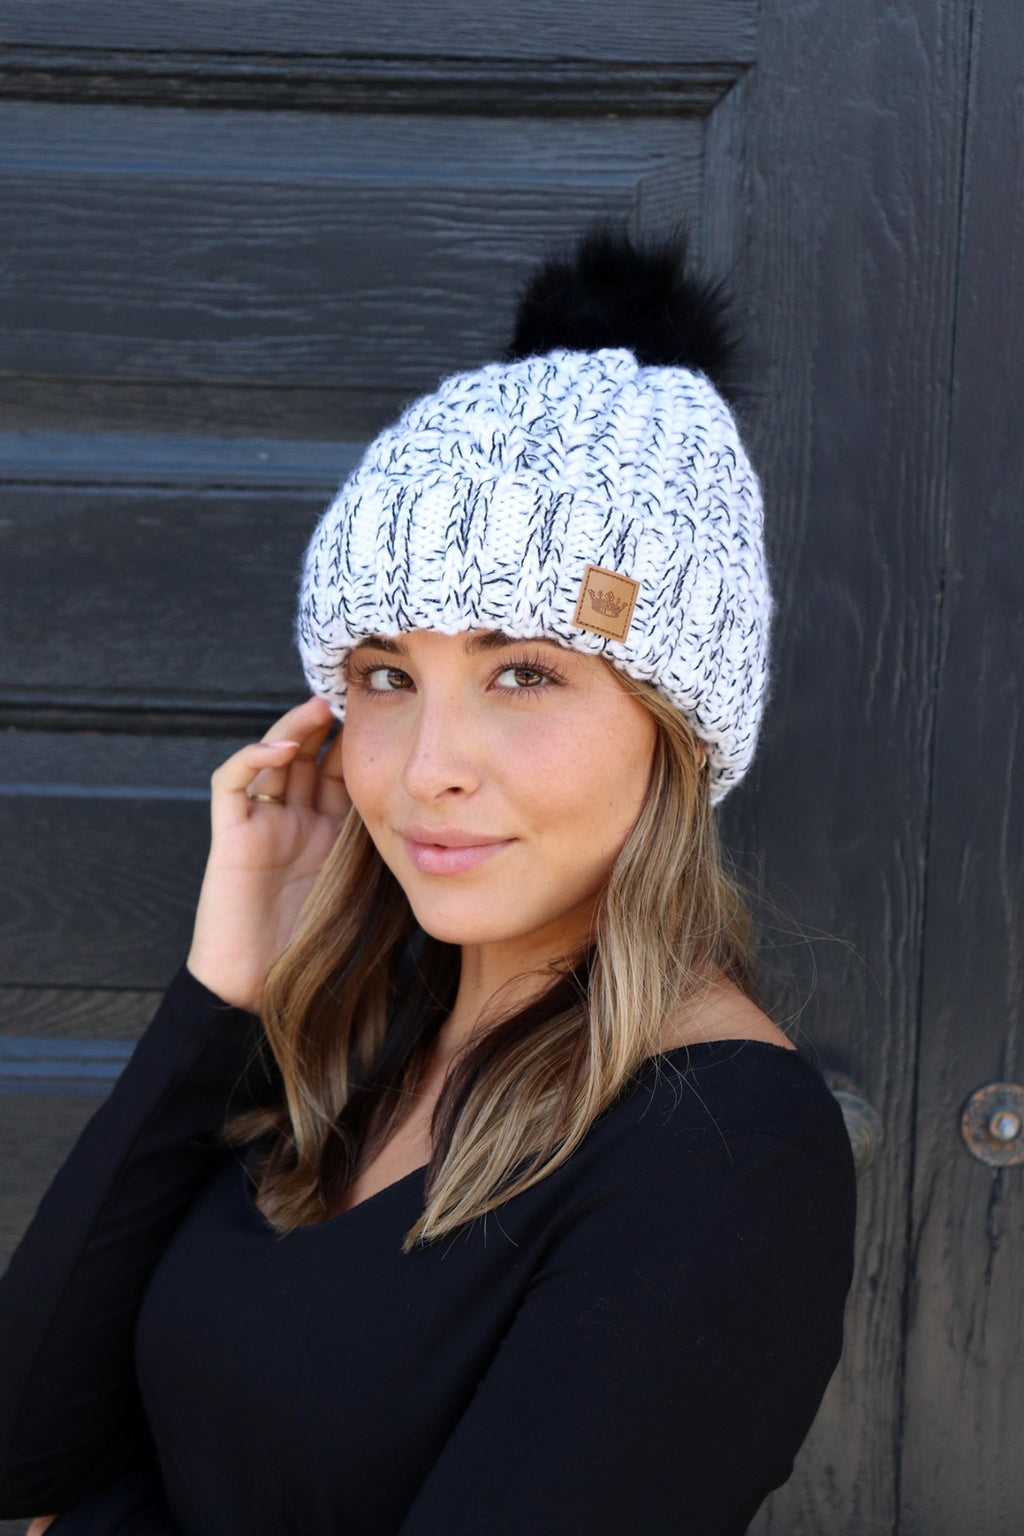 White & Black Marbled Fleece Lined Hat